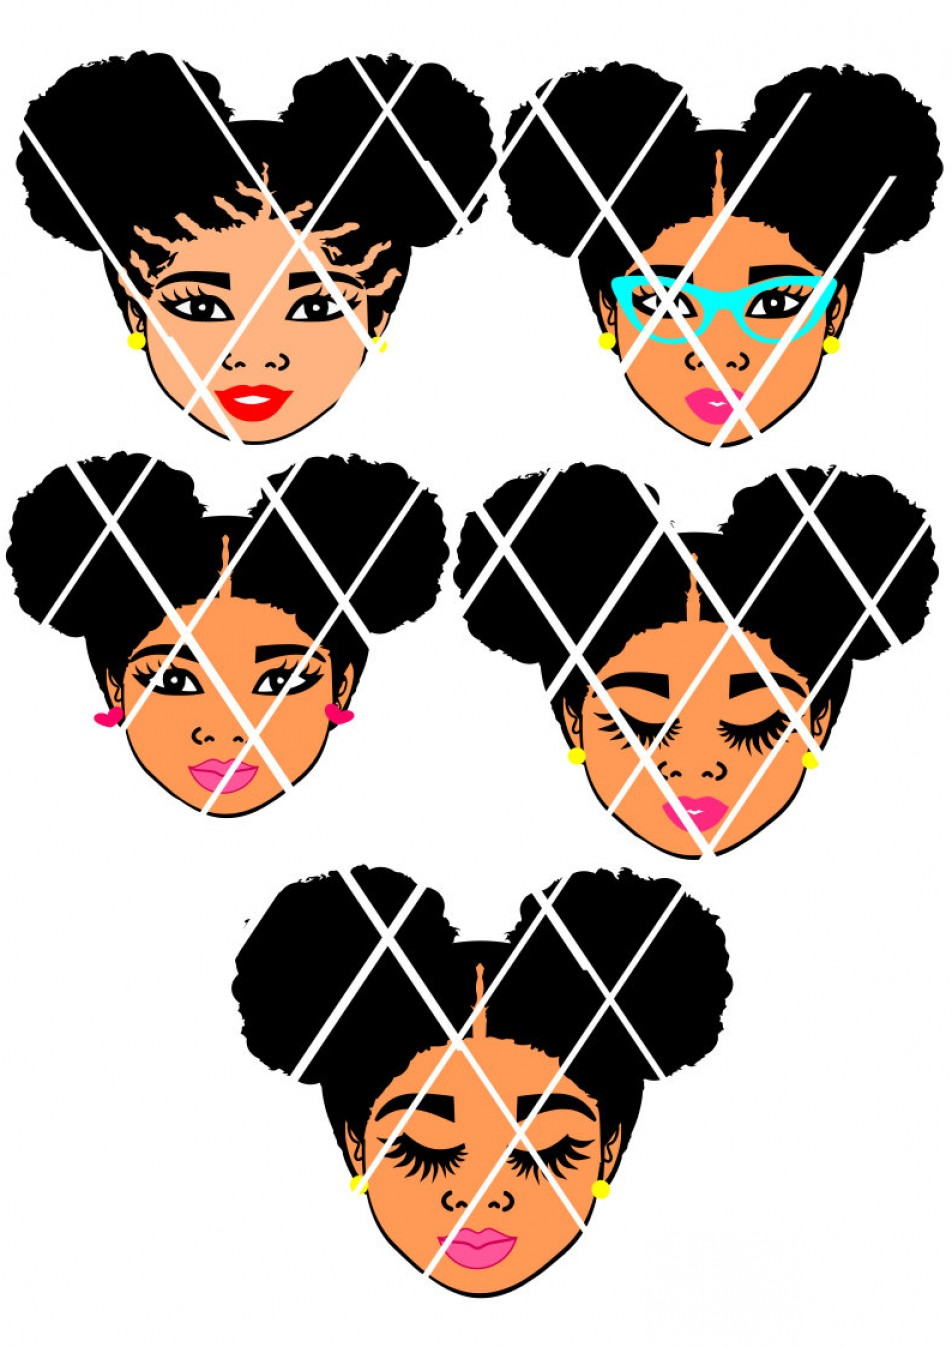 Marvelous Library Of Little Girl With Afro Puffs Vector Royalty Free Stock Natural Hairstyles Runnerswayorg